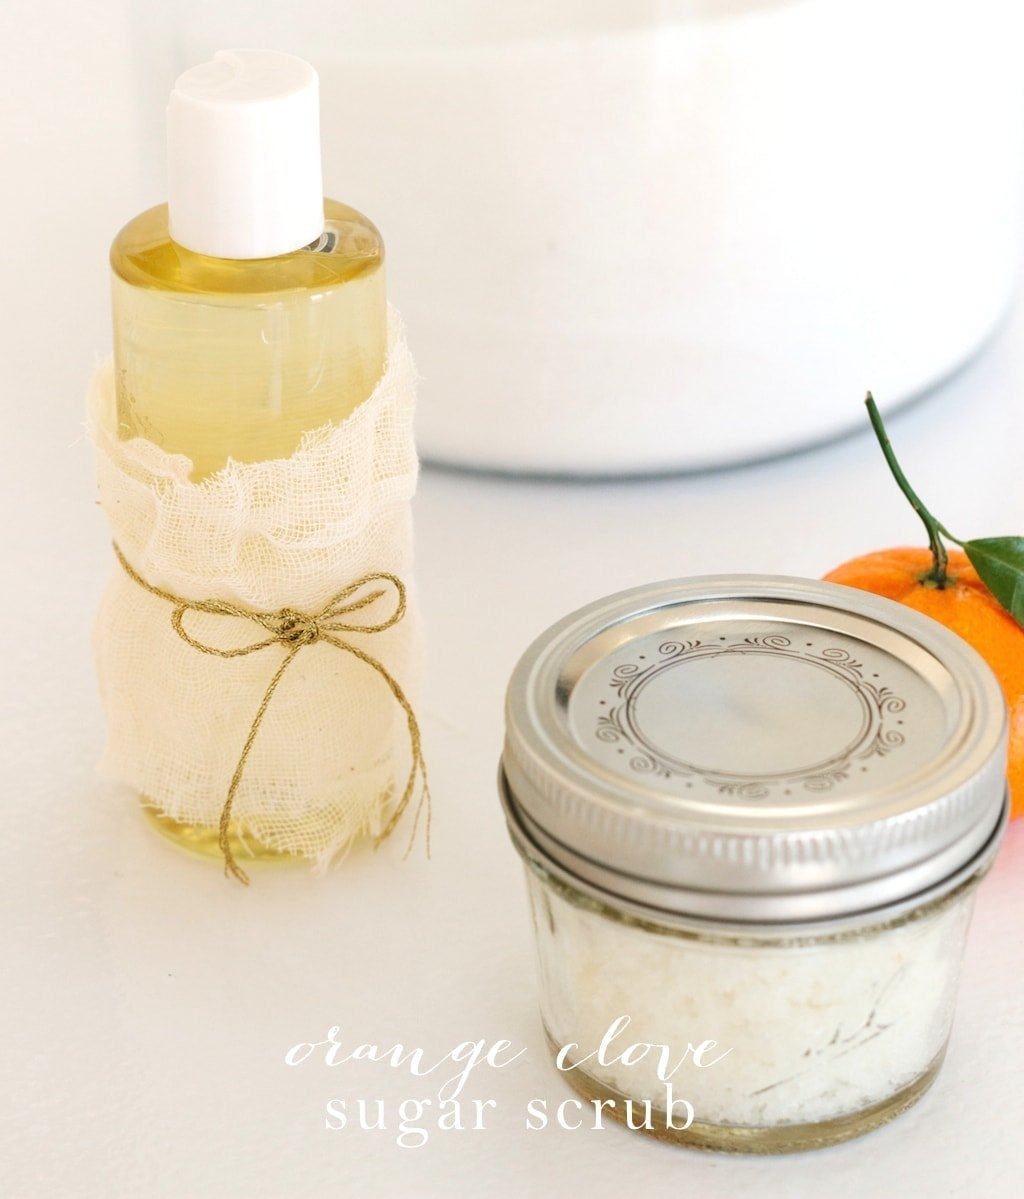 Make your own easy sugar scrub in minutes! Get the recipe for this fragrant Orange Clove sugar scrub, perfect for winter!